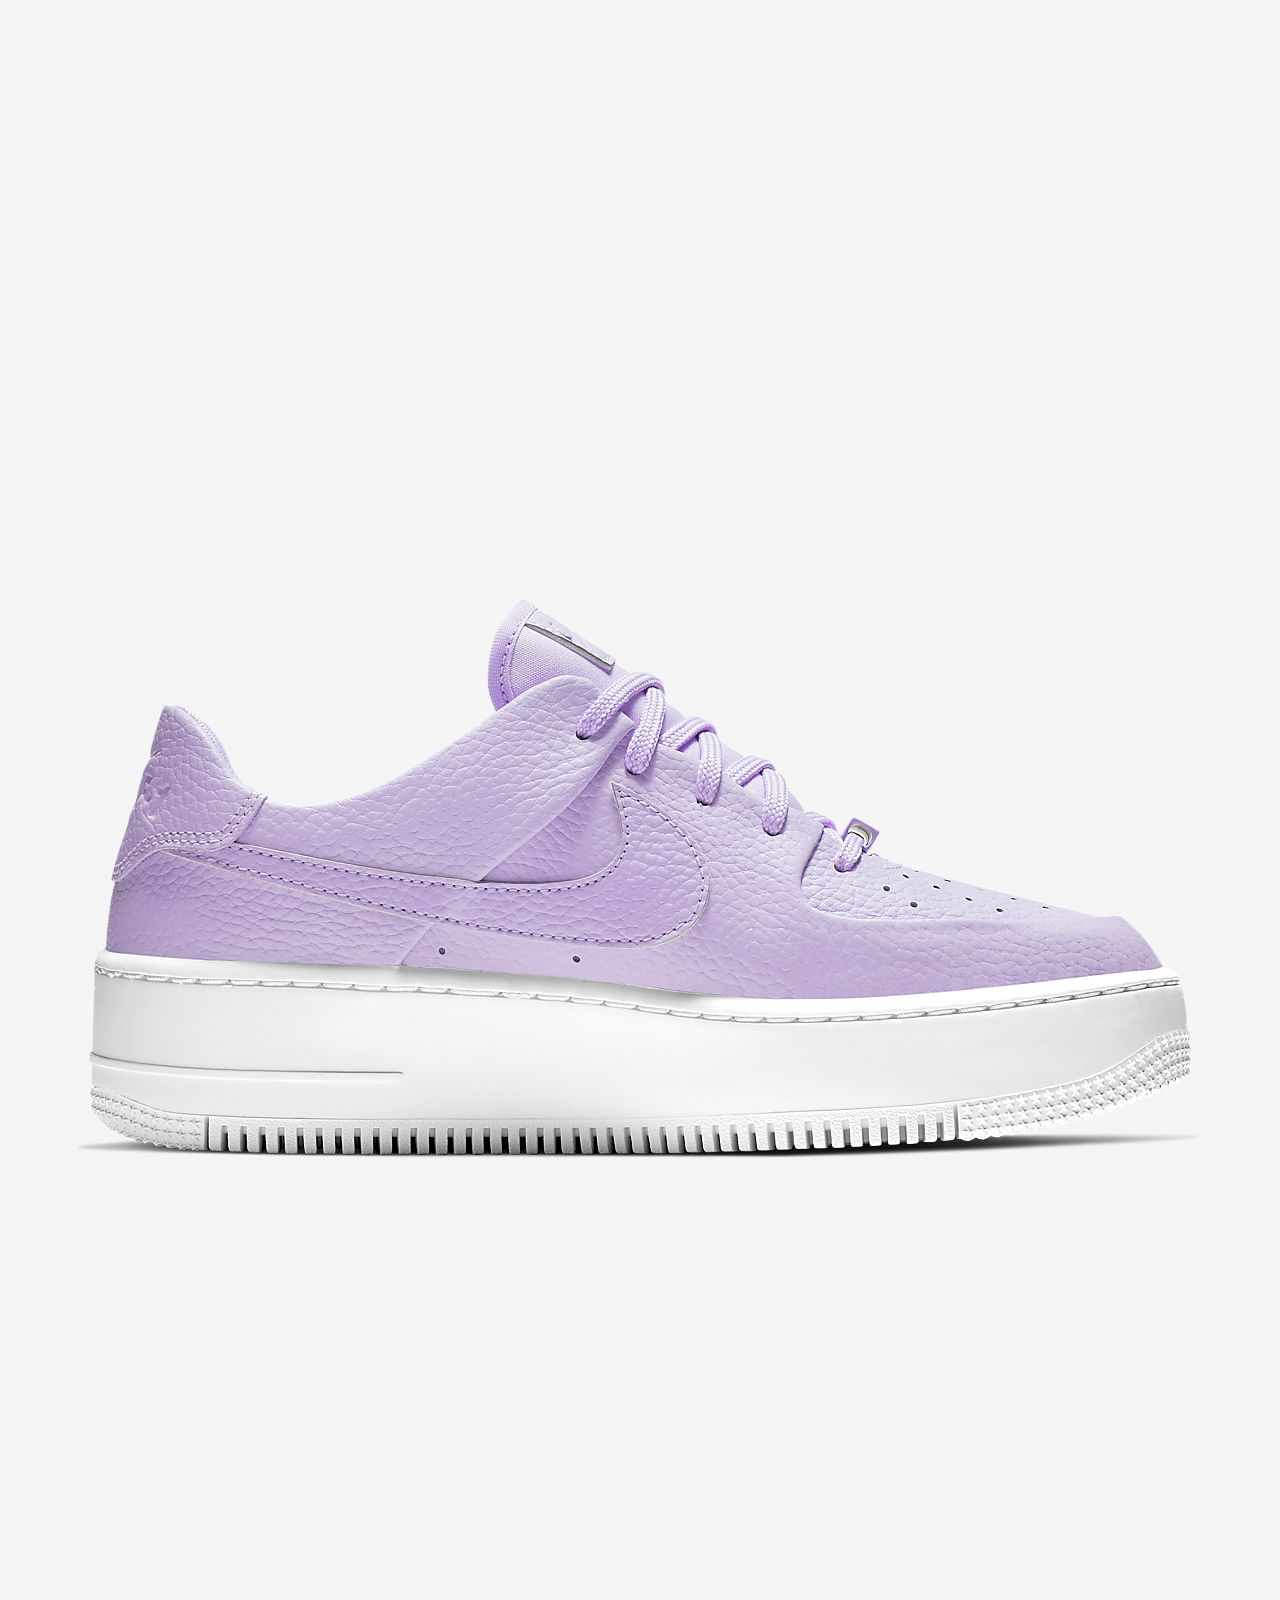 competitive price 01b4a 9d4e2 ... Nike Air Force 1 Sage Low Women s Shoe